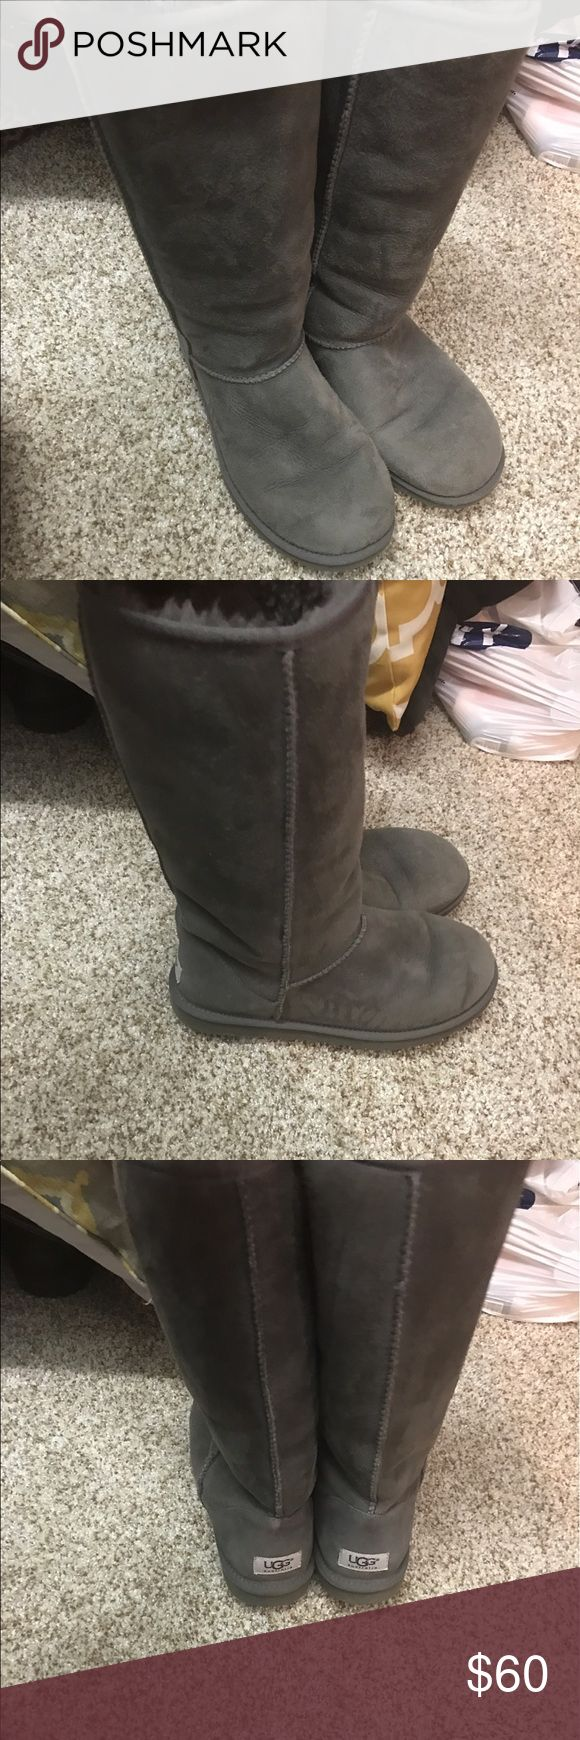 Grey Uggs Great condition! Size 9 grey uggs. UGG Shoes Winter & Rain Boots